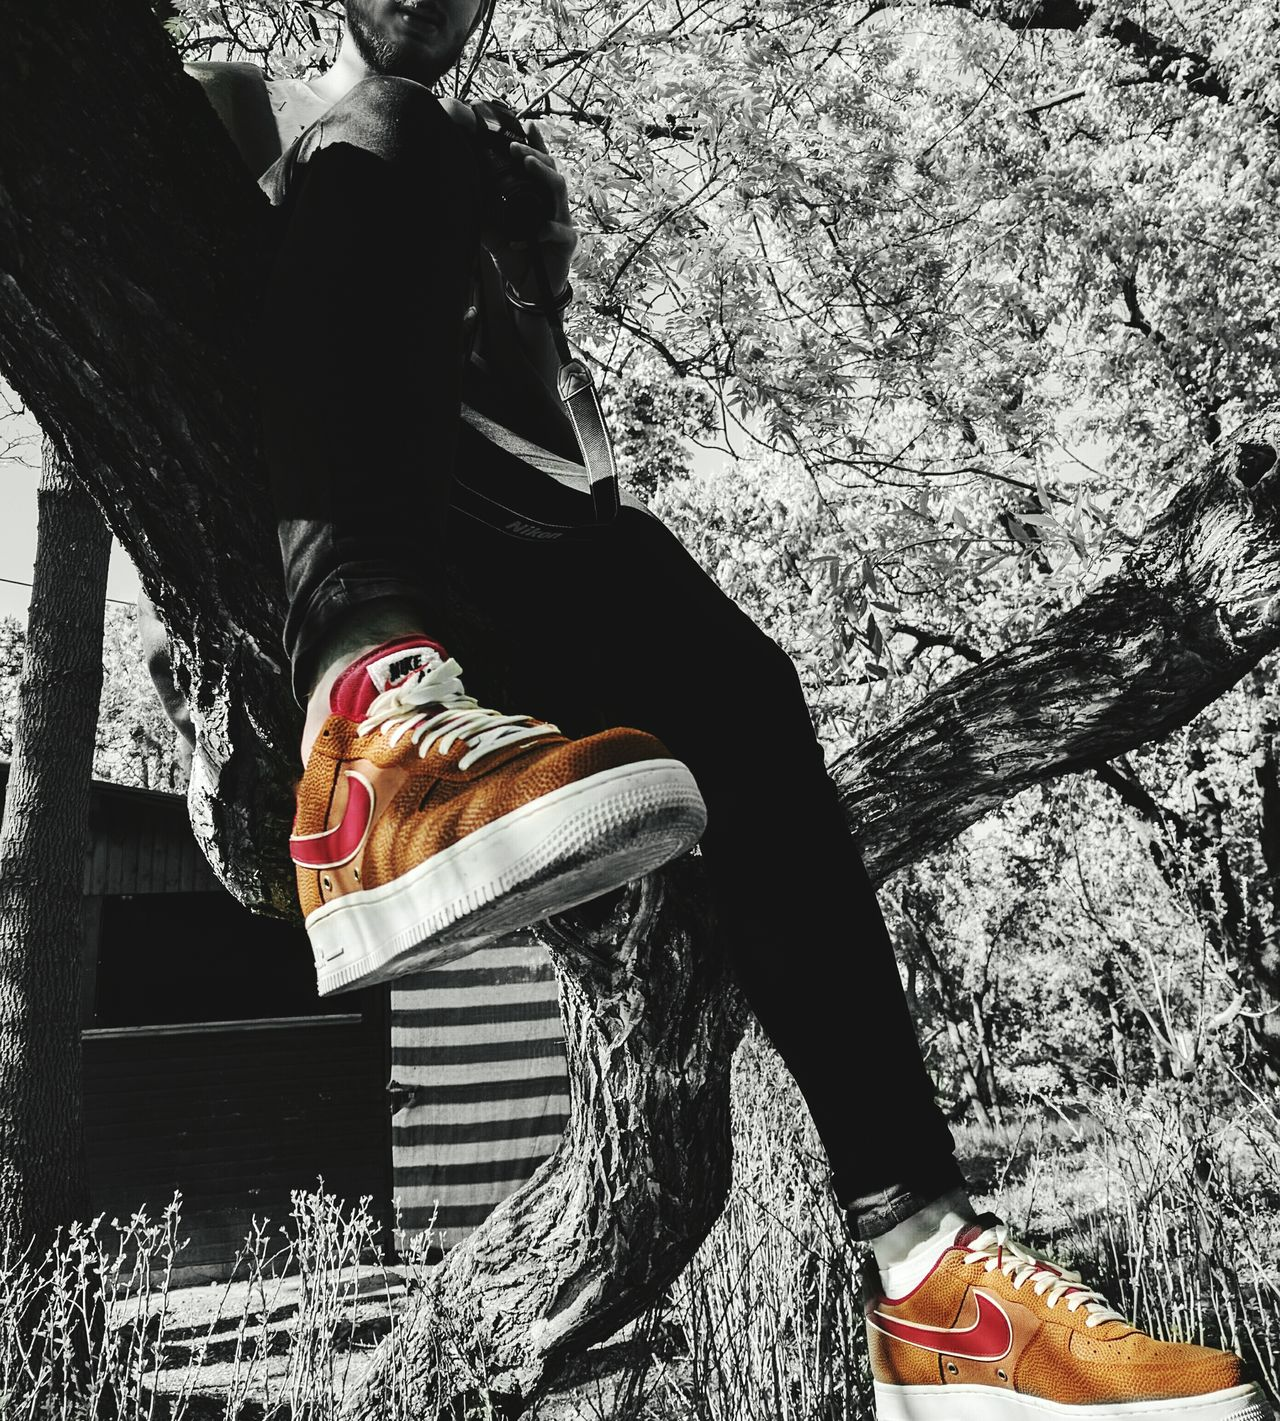 Nike Airforce1 LV8 NBA Only Women One Woman Only Adults Only One Young Woman Only Adult One Person People Young Adult Human Body Part Young Women Portrait Studio Shot Indoors  Black Background Beautiful Woman Day Backgrounds Cereal Plant Tranquil Scene Rural Scene Cloud - Sky First Eyeem Photo Wheat Freshness Scenics Break The Mold